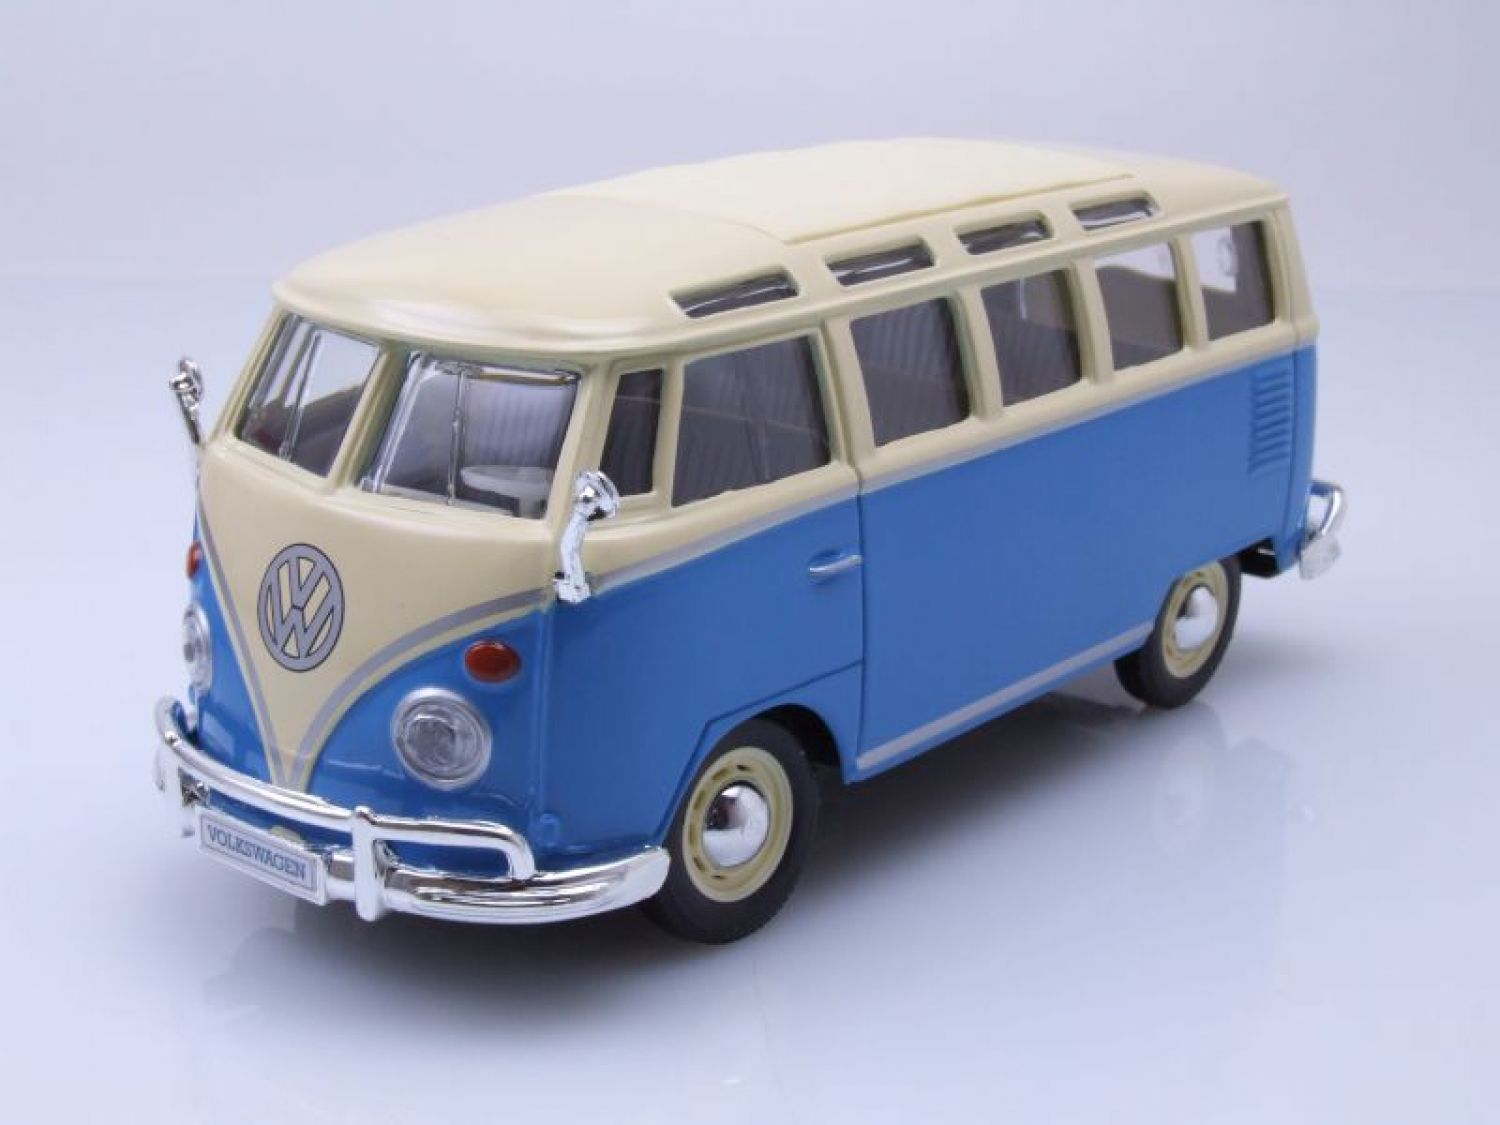 vw bus t1 samba blau creme modellauto 1 25 maisto ebay. Black Bedroom Furniture Sets. Home Design Ideas